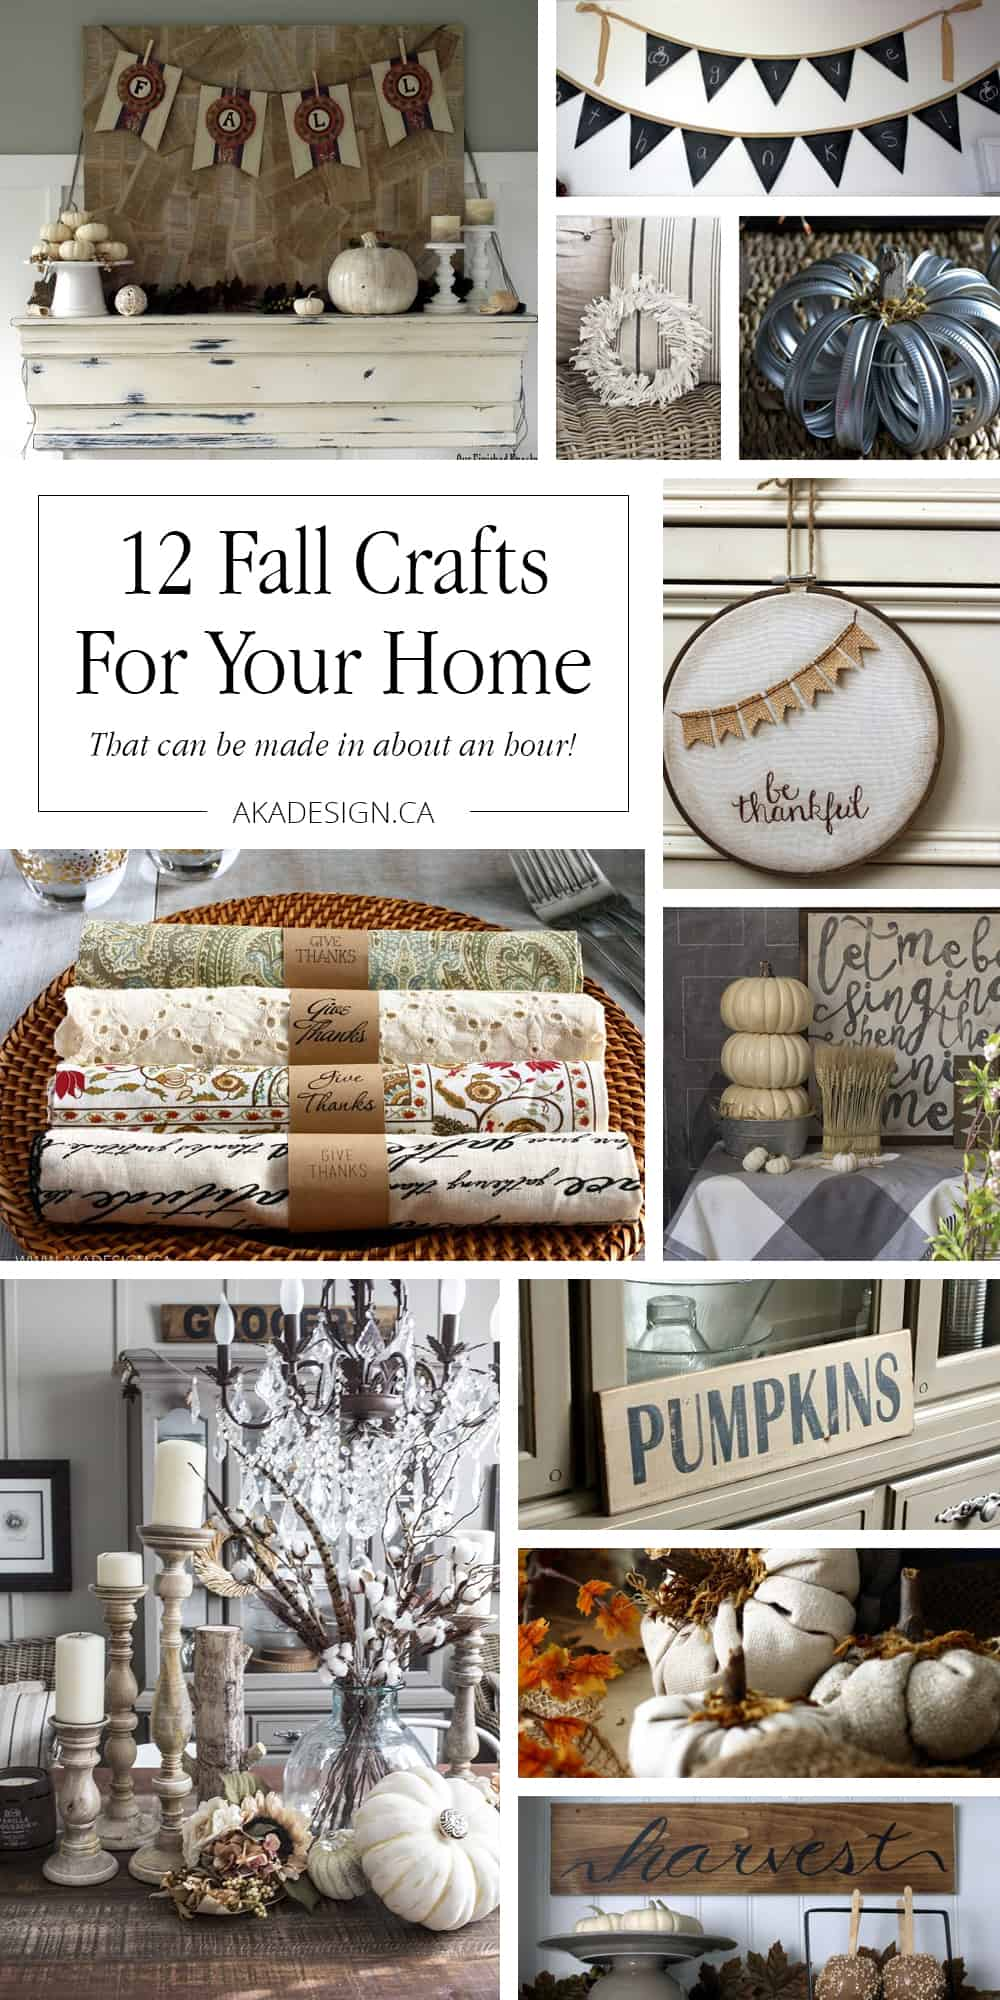 12 fall crafts for your home